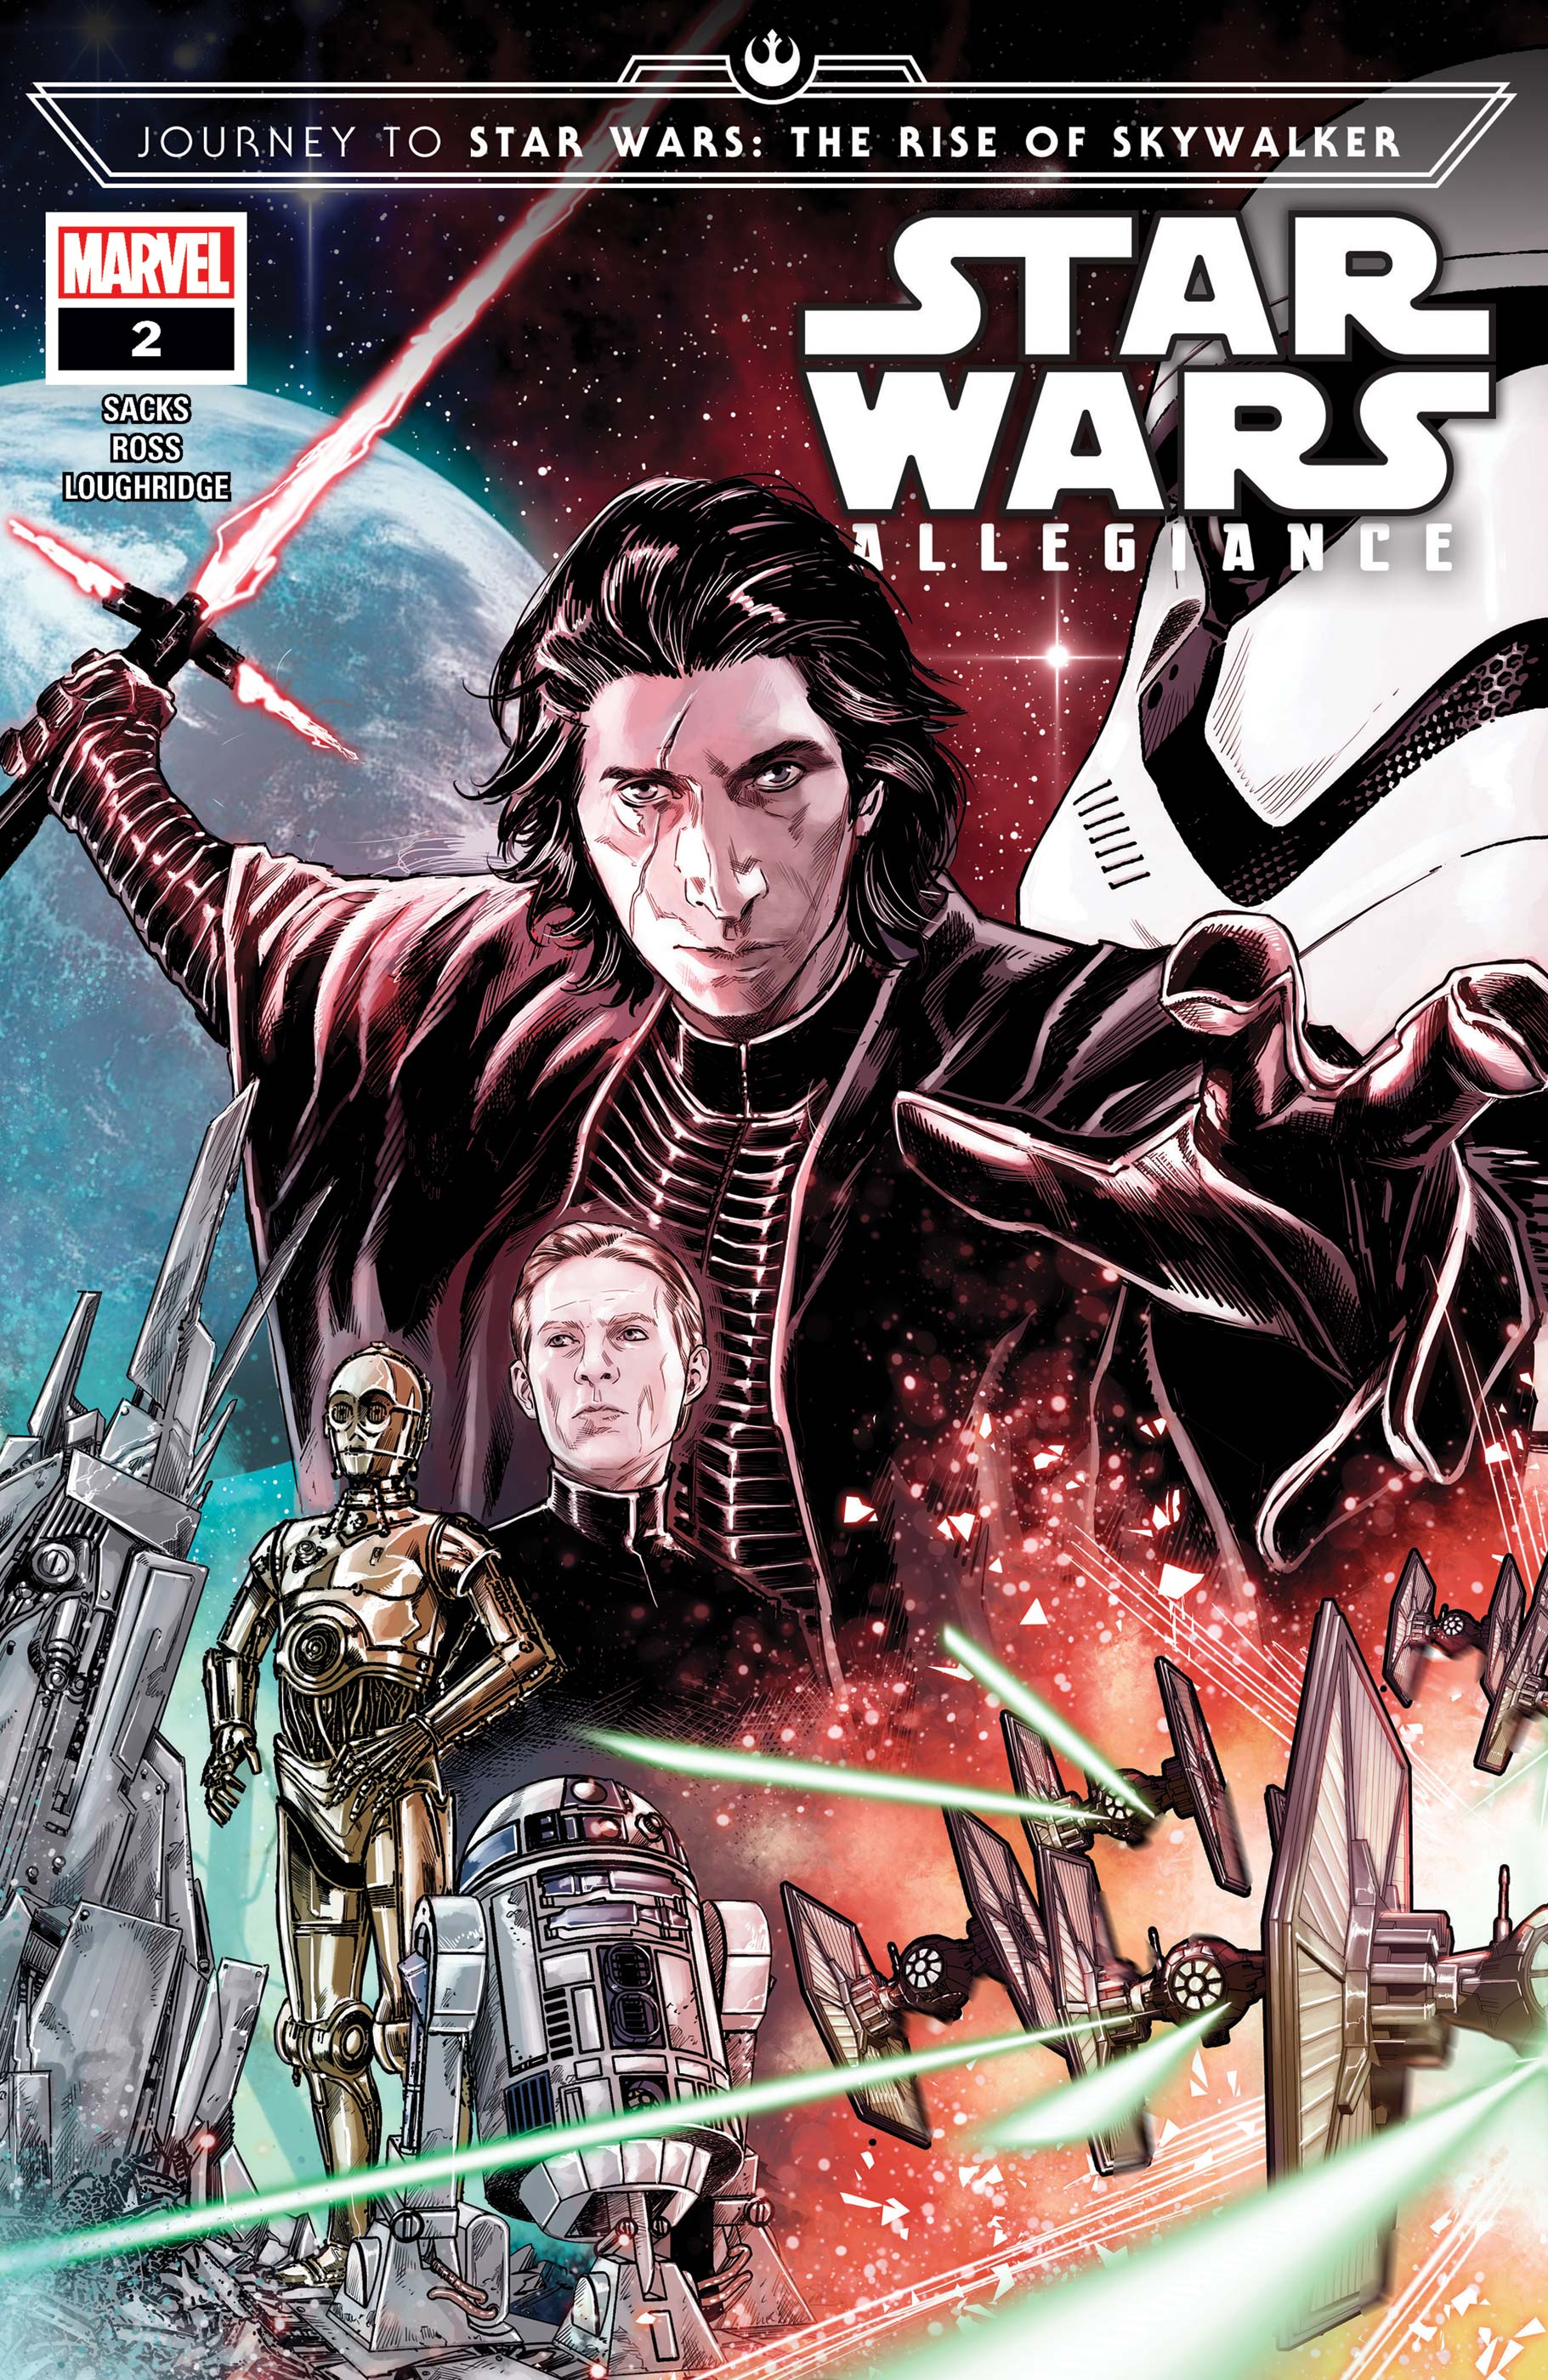 Journey to Star Wars: The Rise of Skywalker - Allegiance (2019) #2